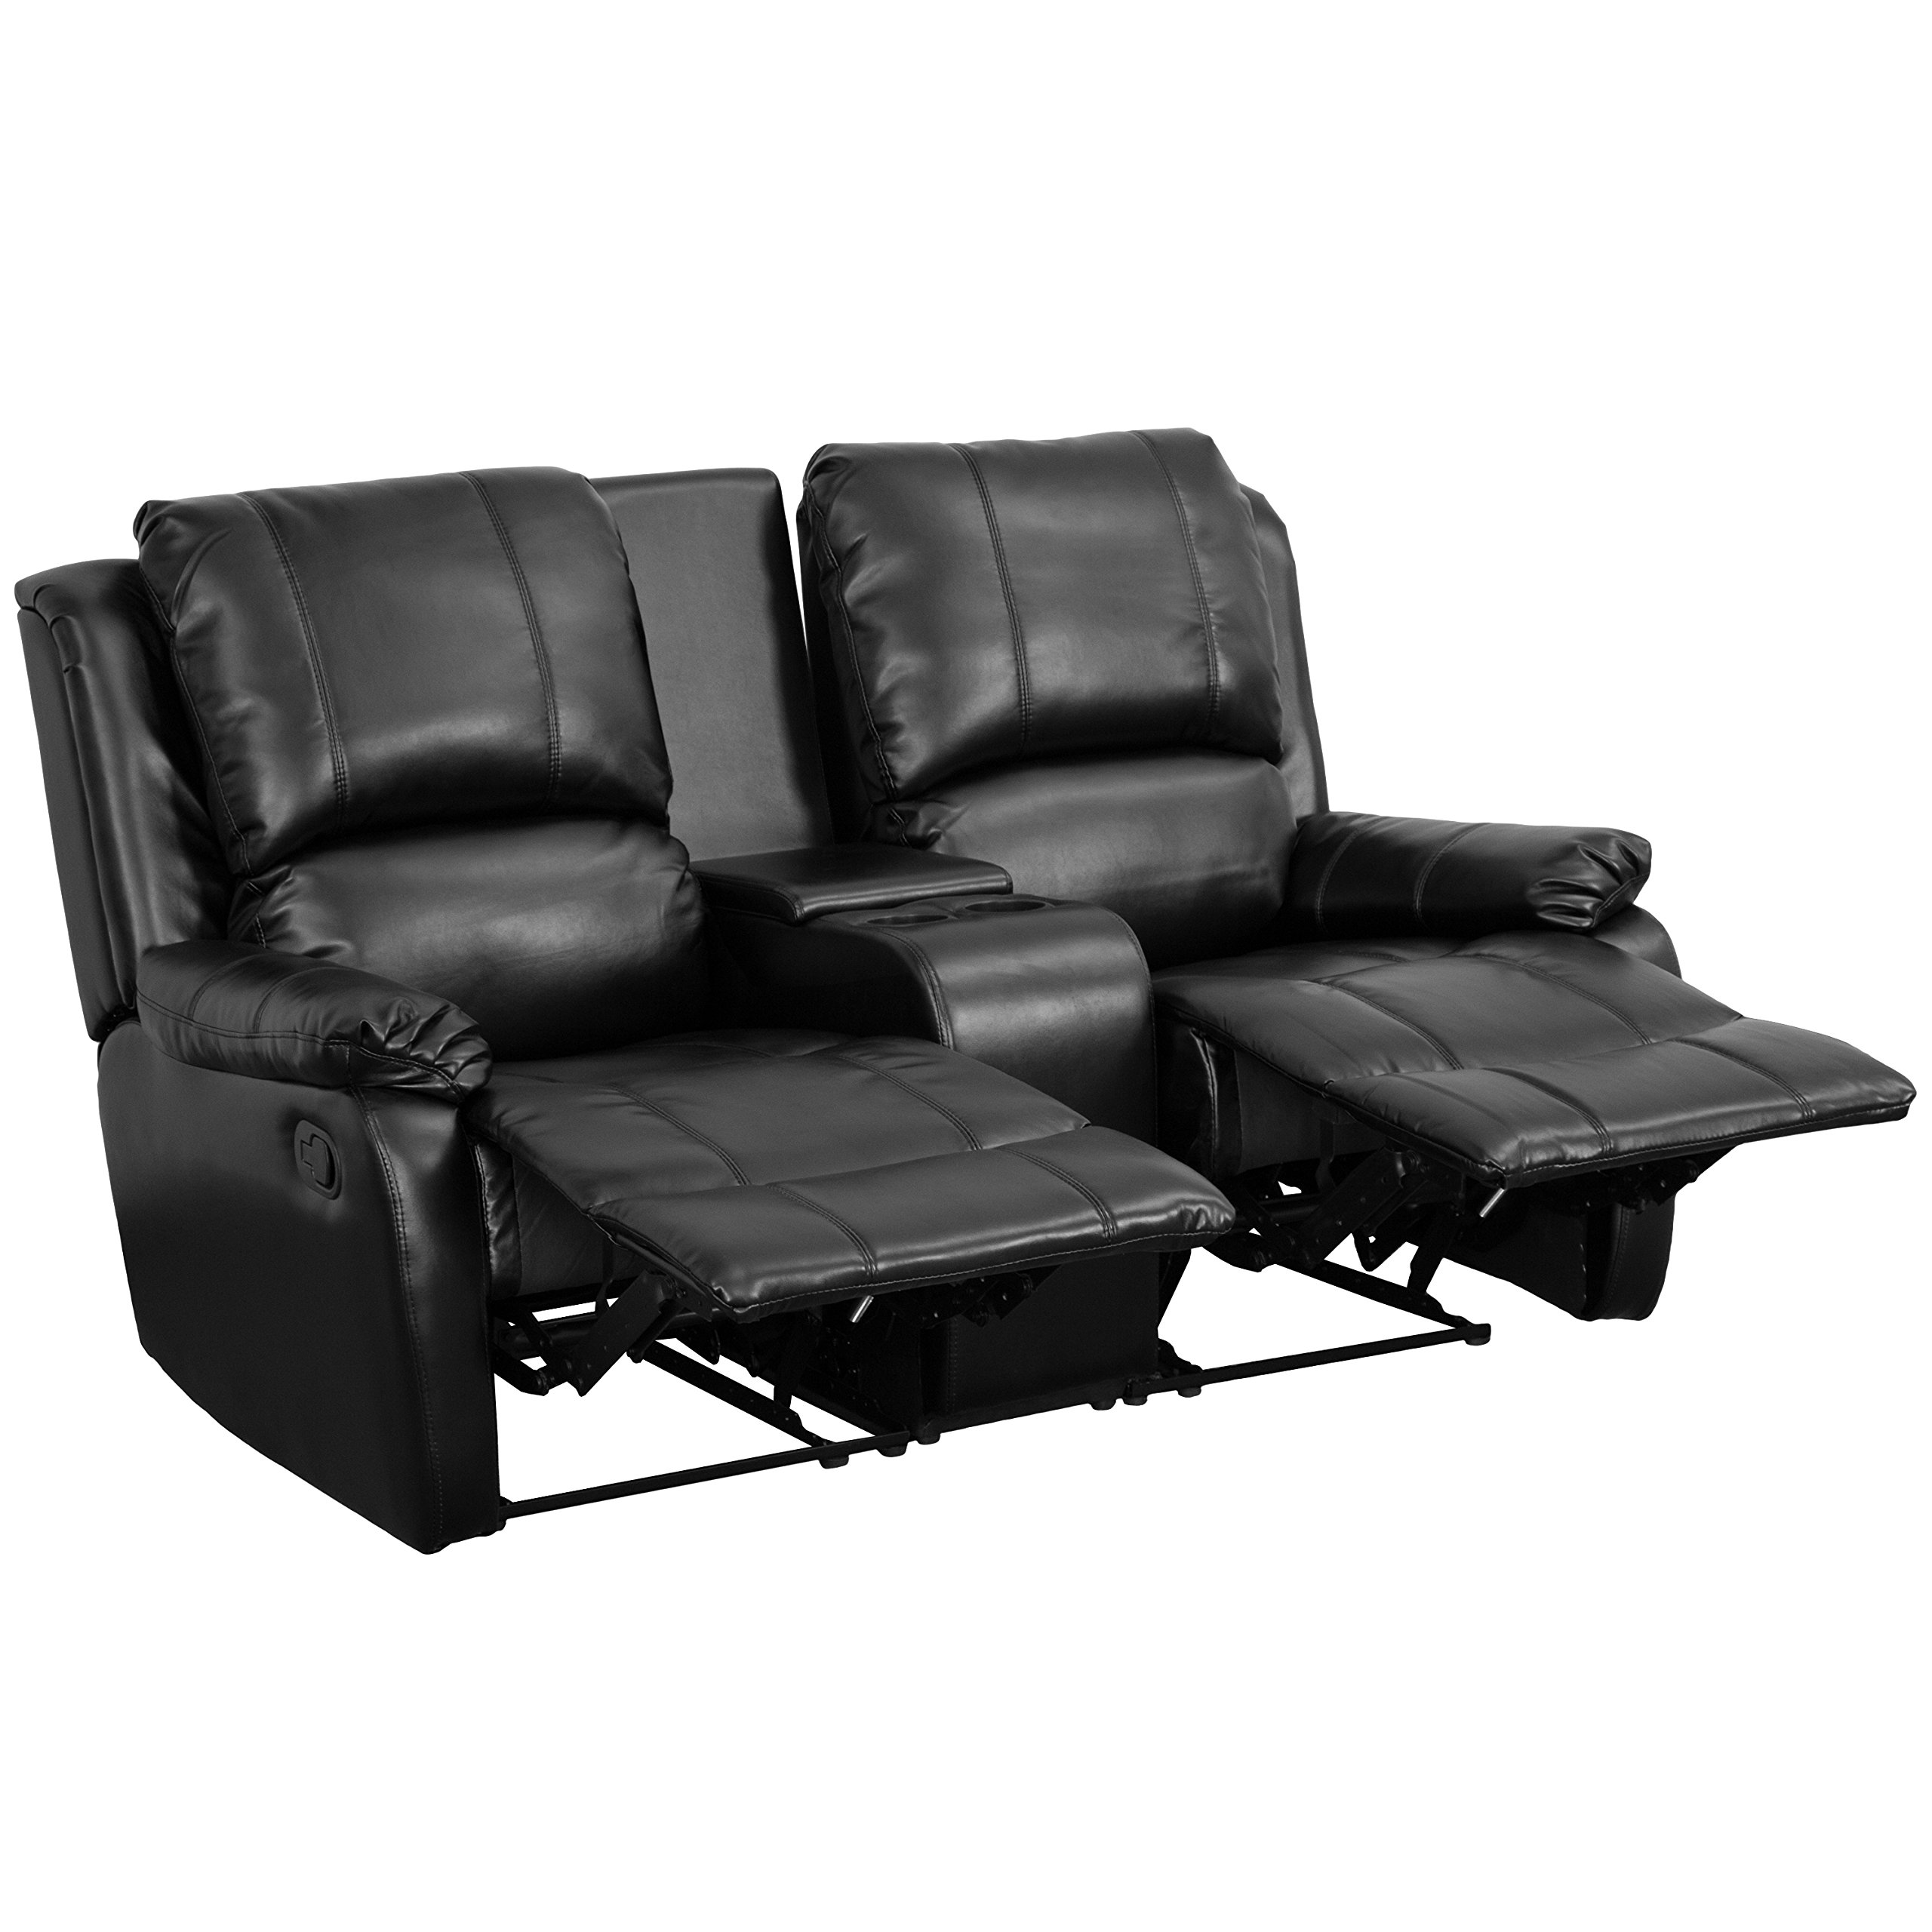 Flash Furniture Allure Series 2-Seat Reclining Pillow Back Black Leather Theater Seating Unit with Cup Holders